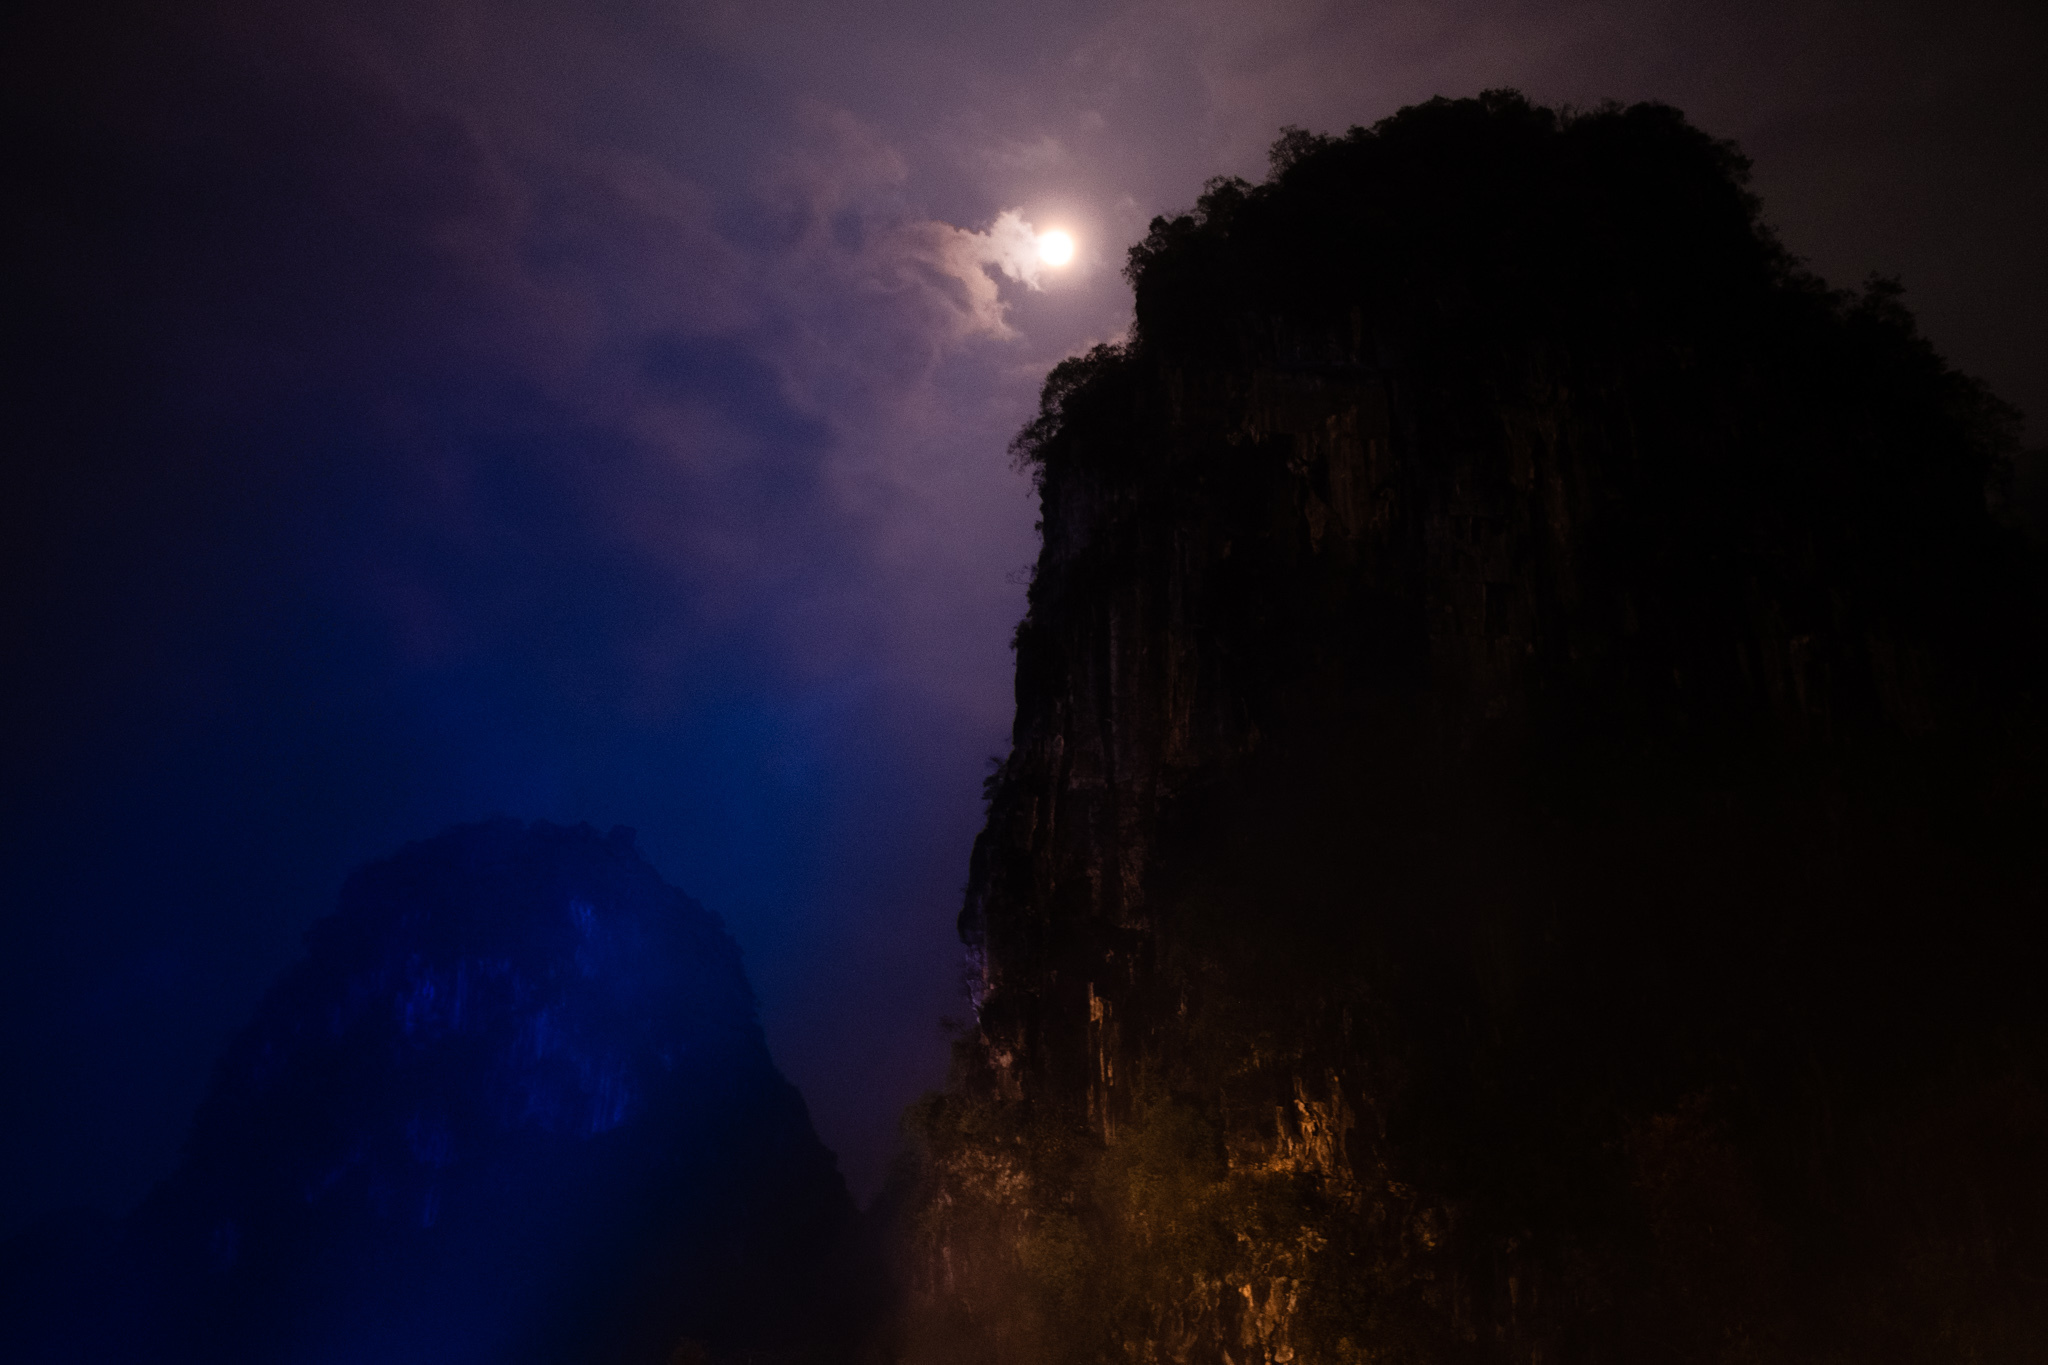 alila-hotel-yangshuo-china-wedding-photographer